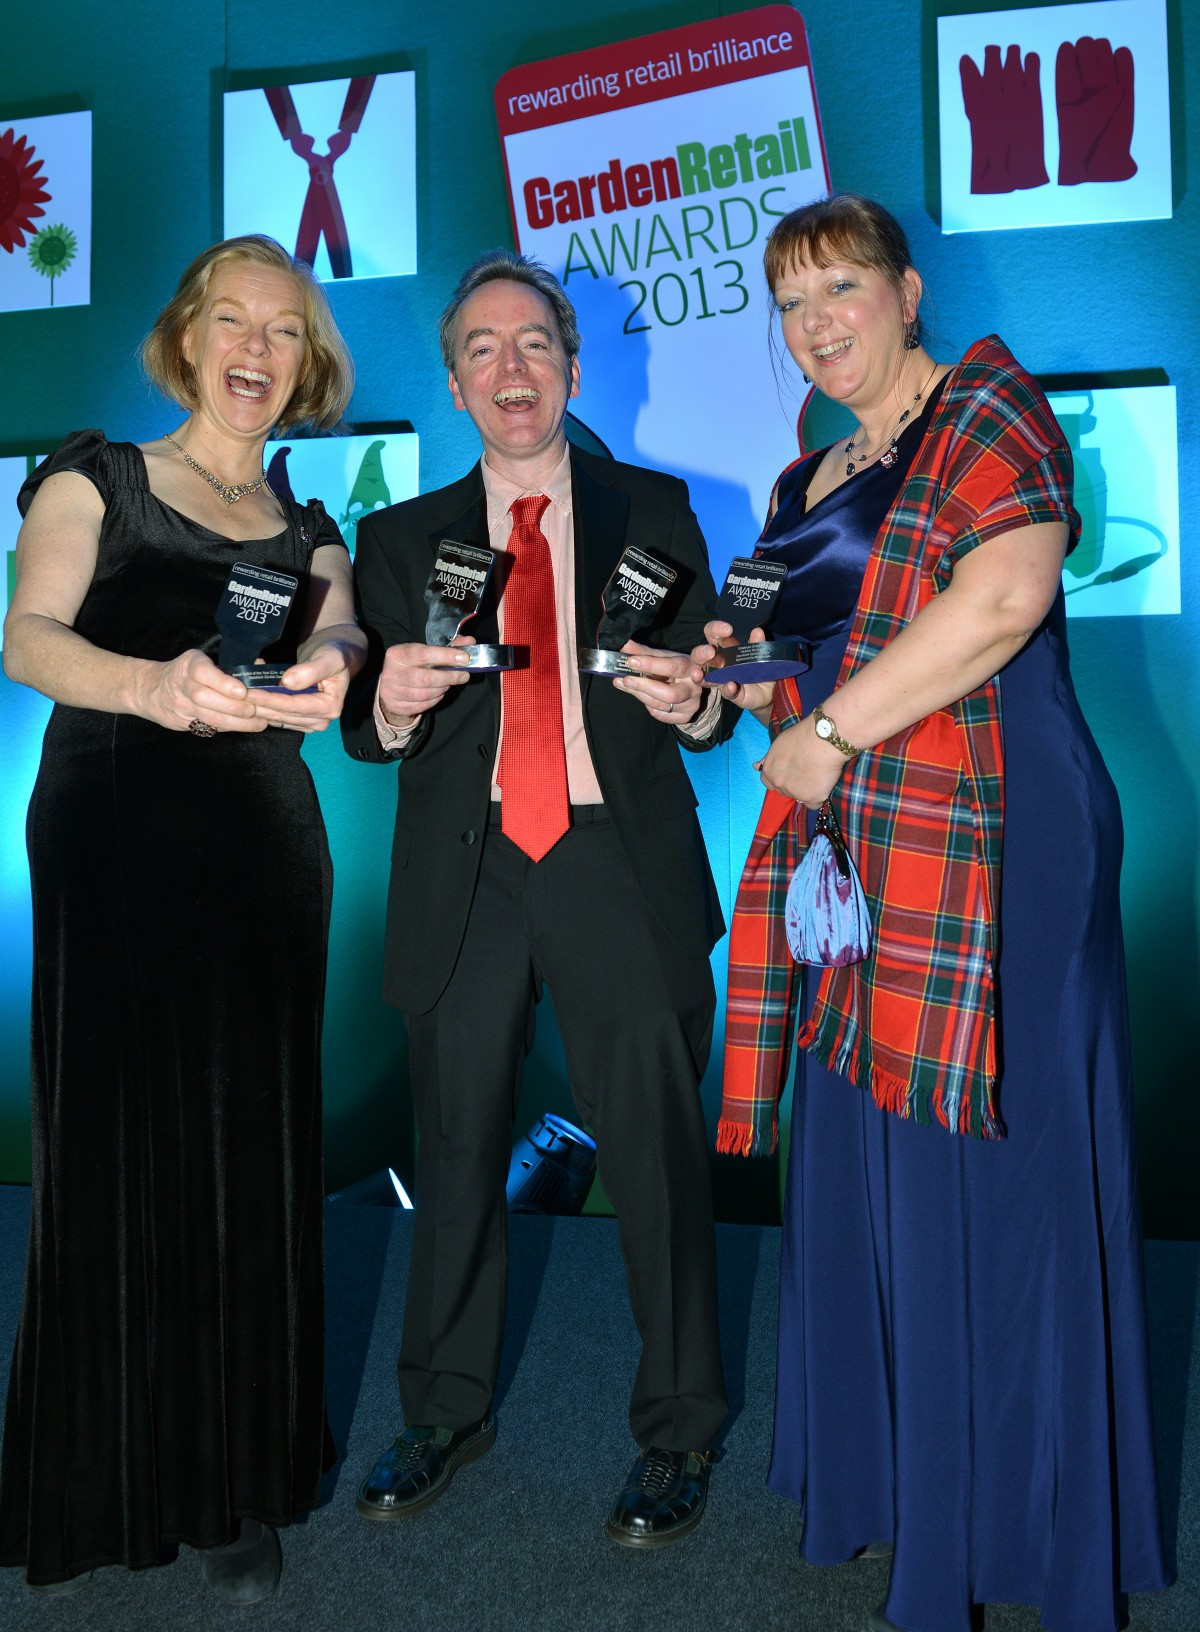 Garden Centre Awards